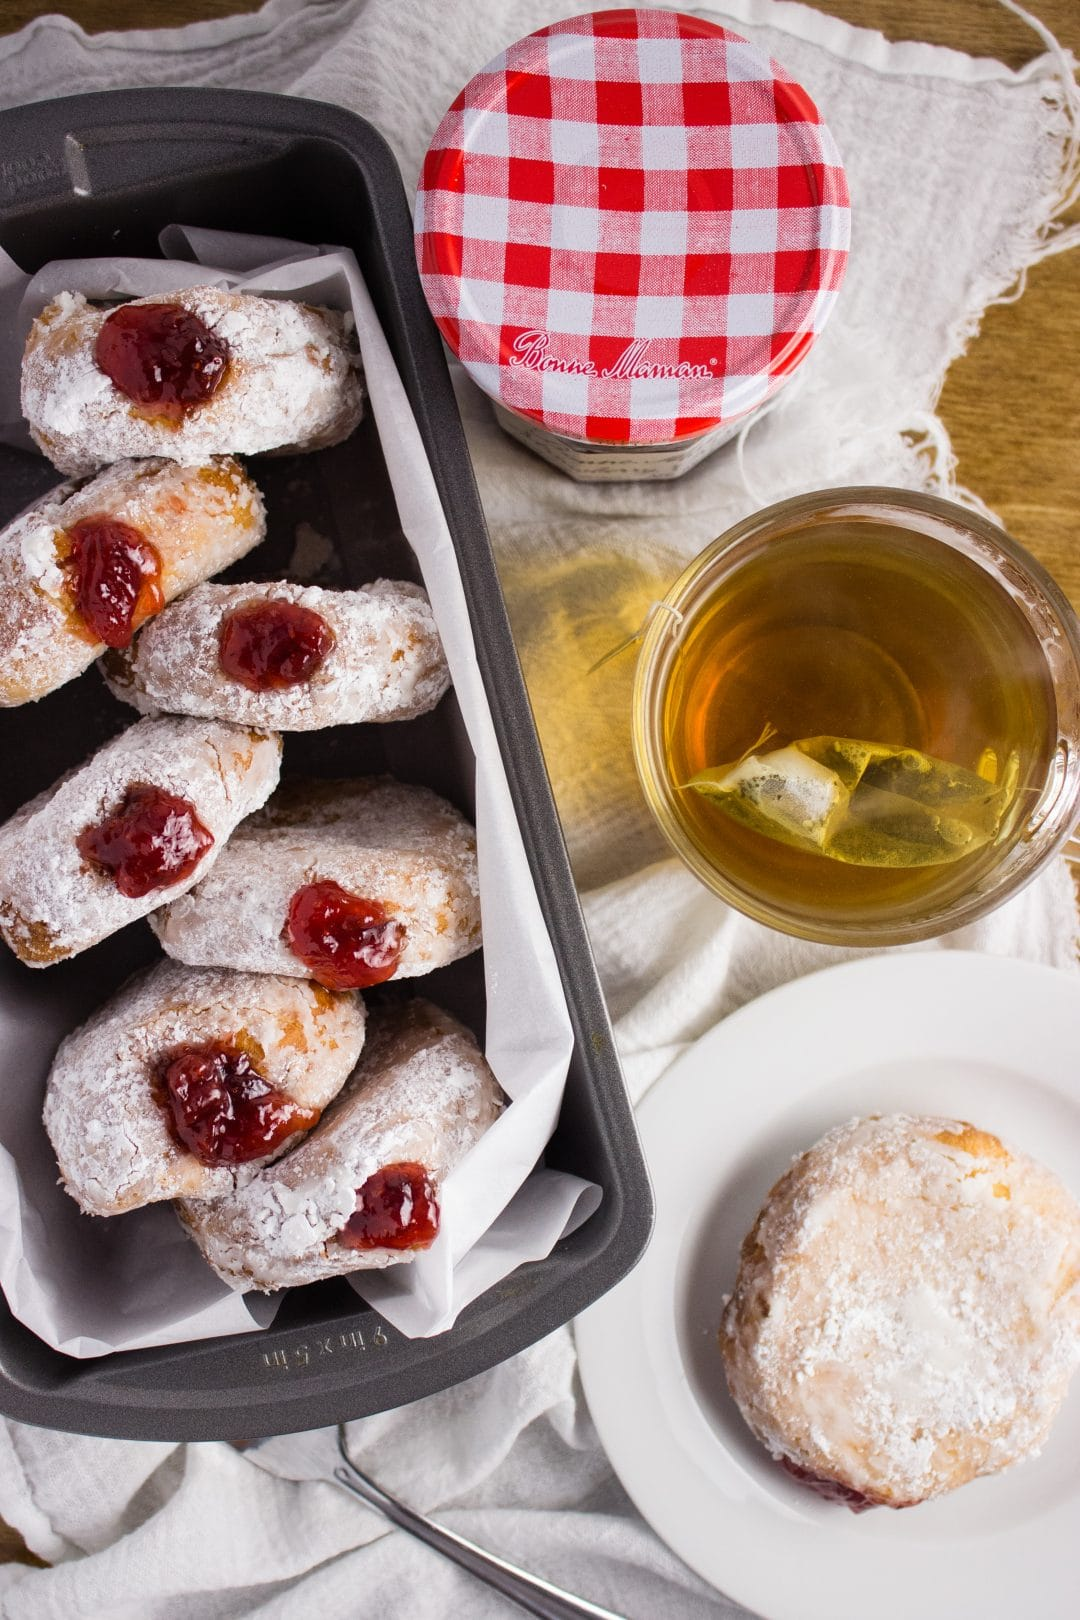 Strawberry Preserve Donuts - Deep fried cake donuts filled with strawberry preserves make the perfect treat to enjoy in bed on Mother's Day with fresh fruit and your favorite cup of coffee. simplylakita.com #donuts #strawberry